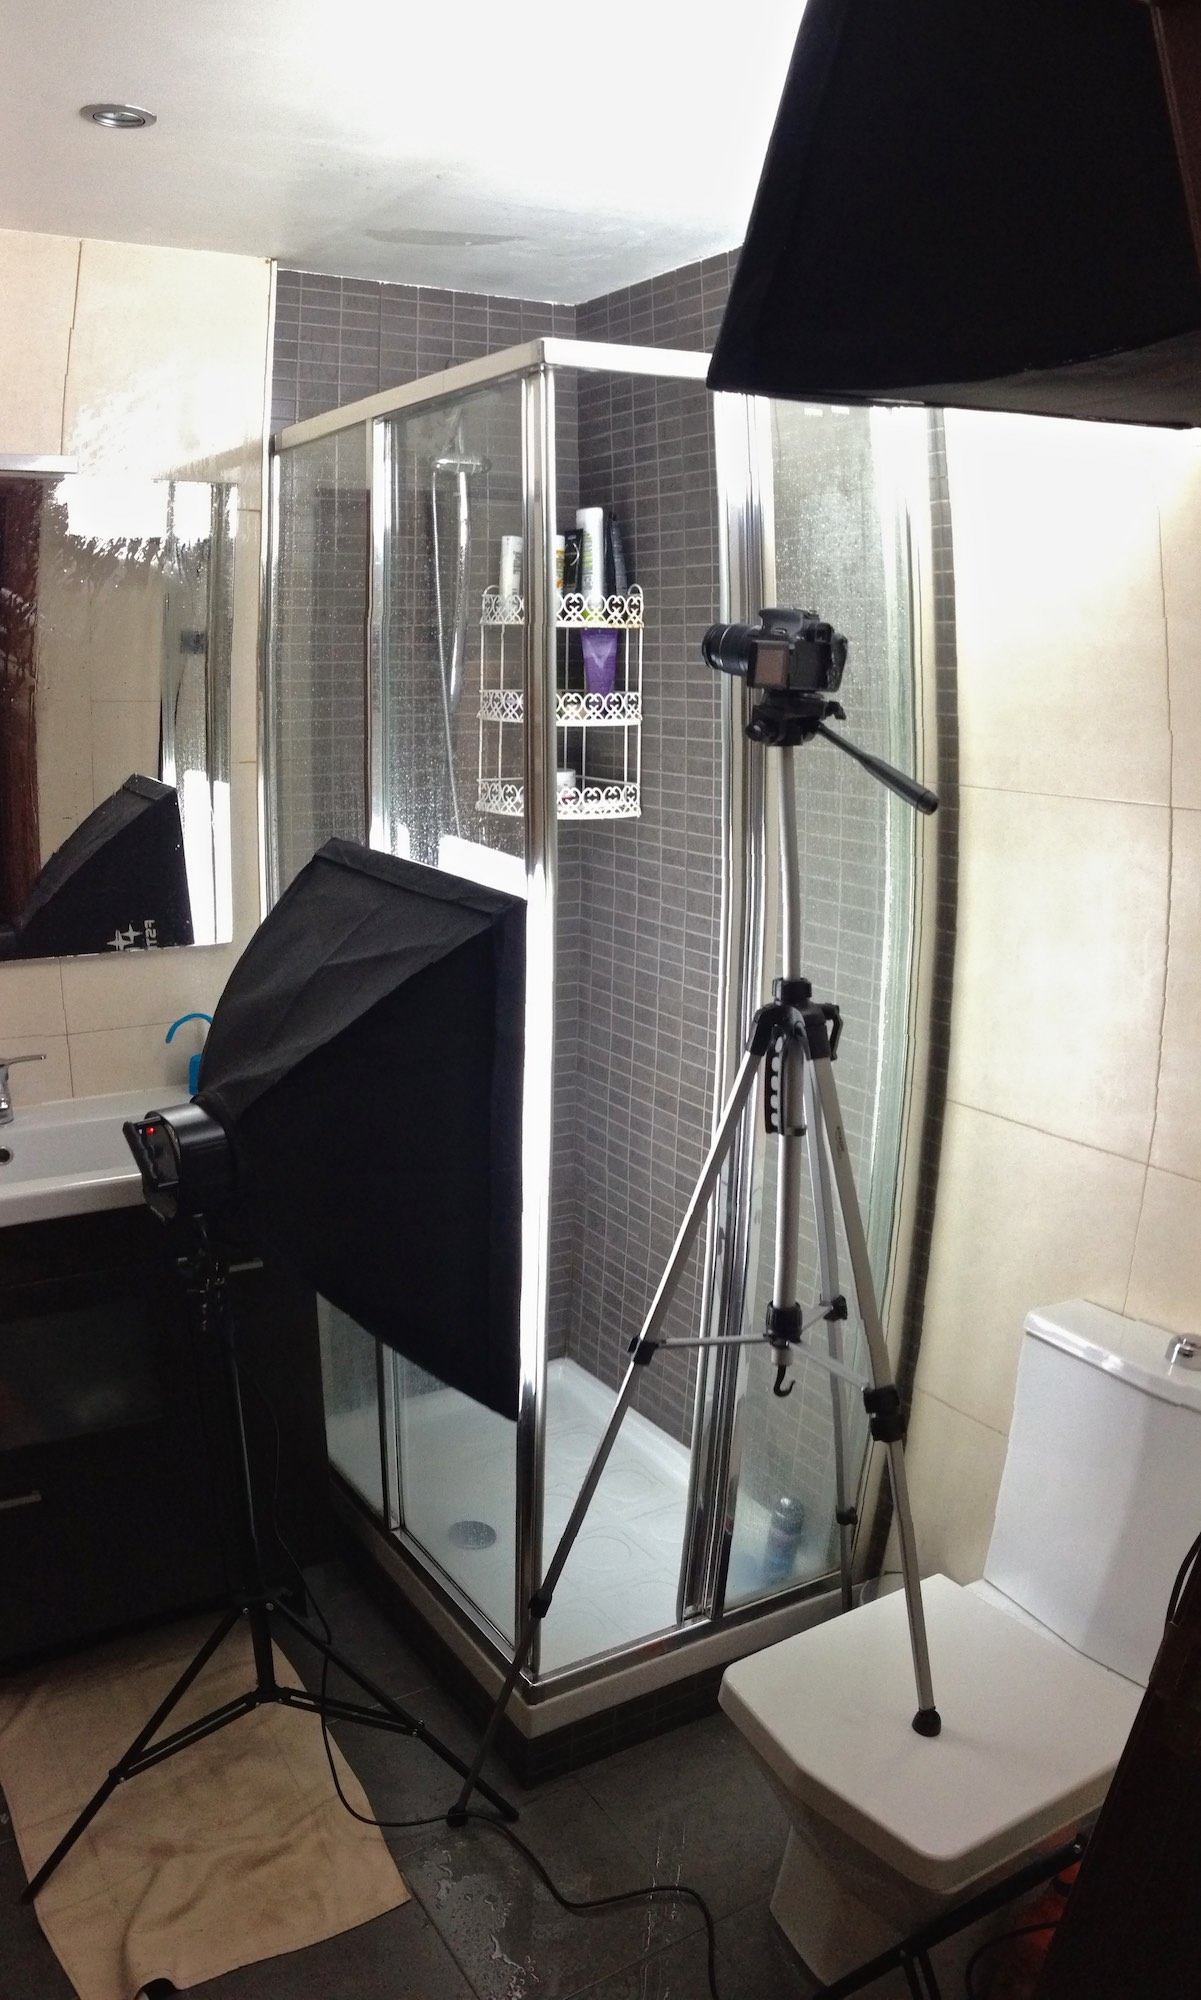 shower scene video recording in the bathroom